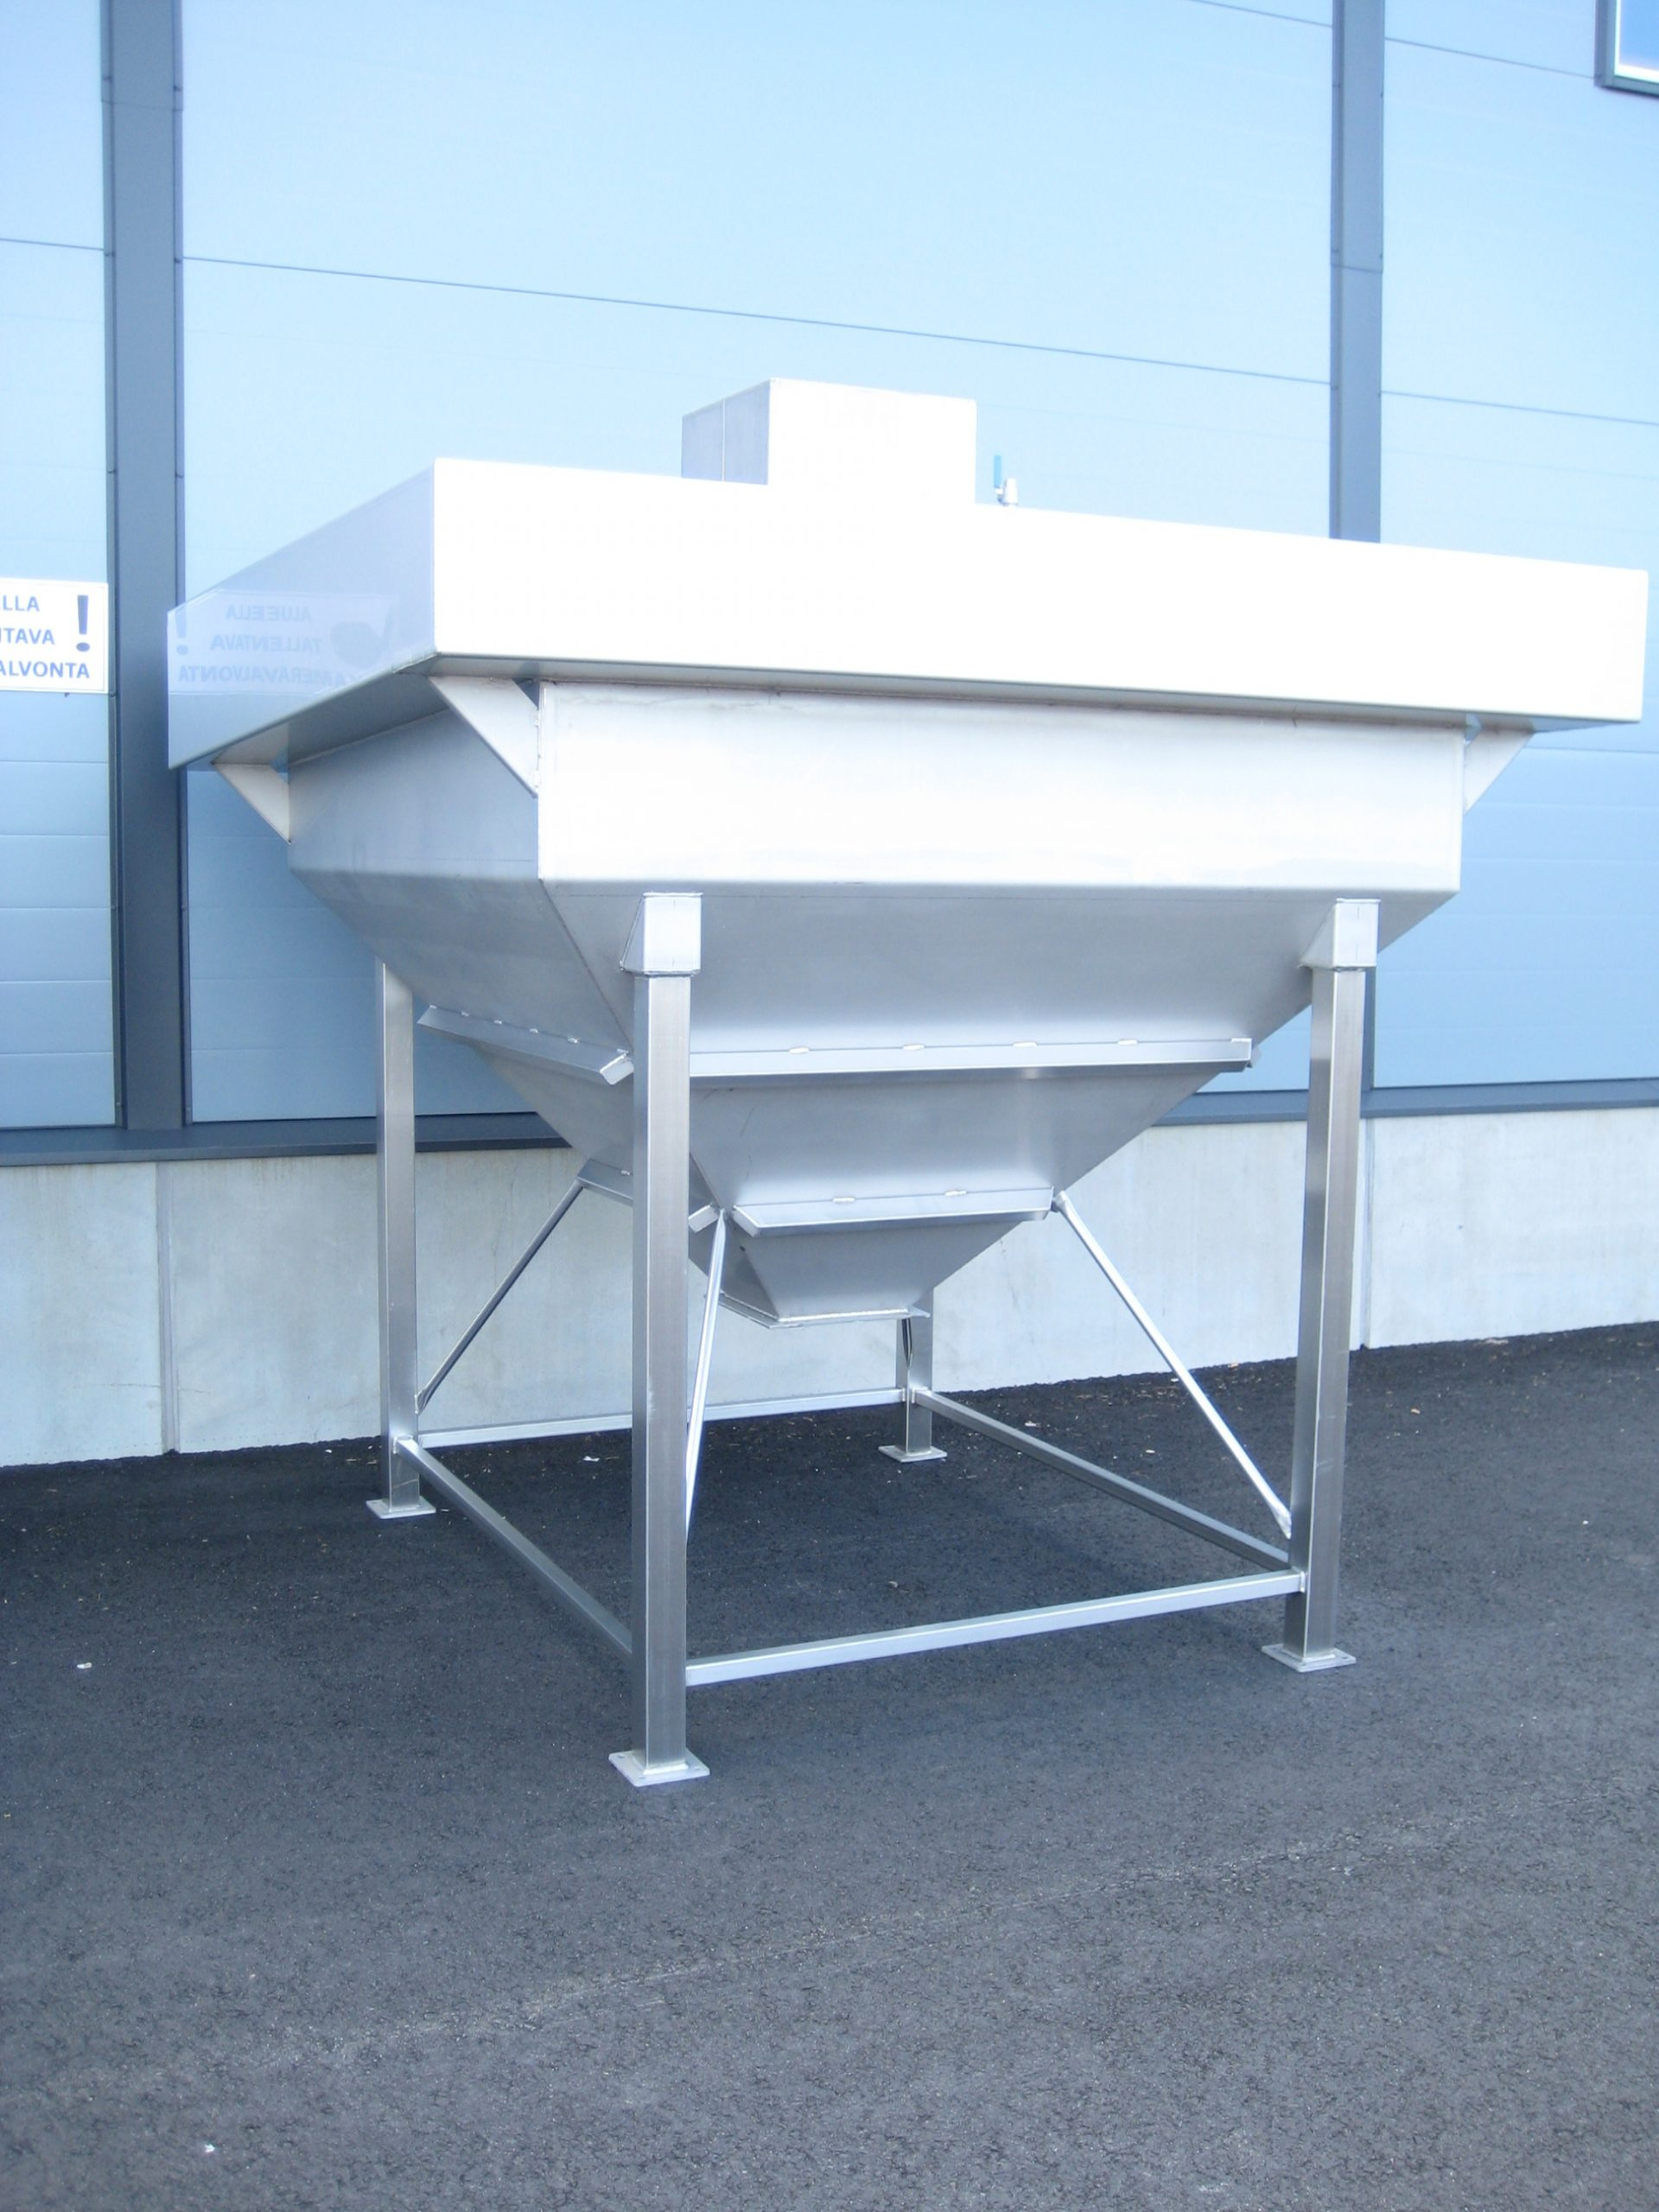 Product image: Steel sand separation units